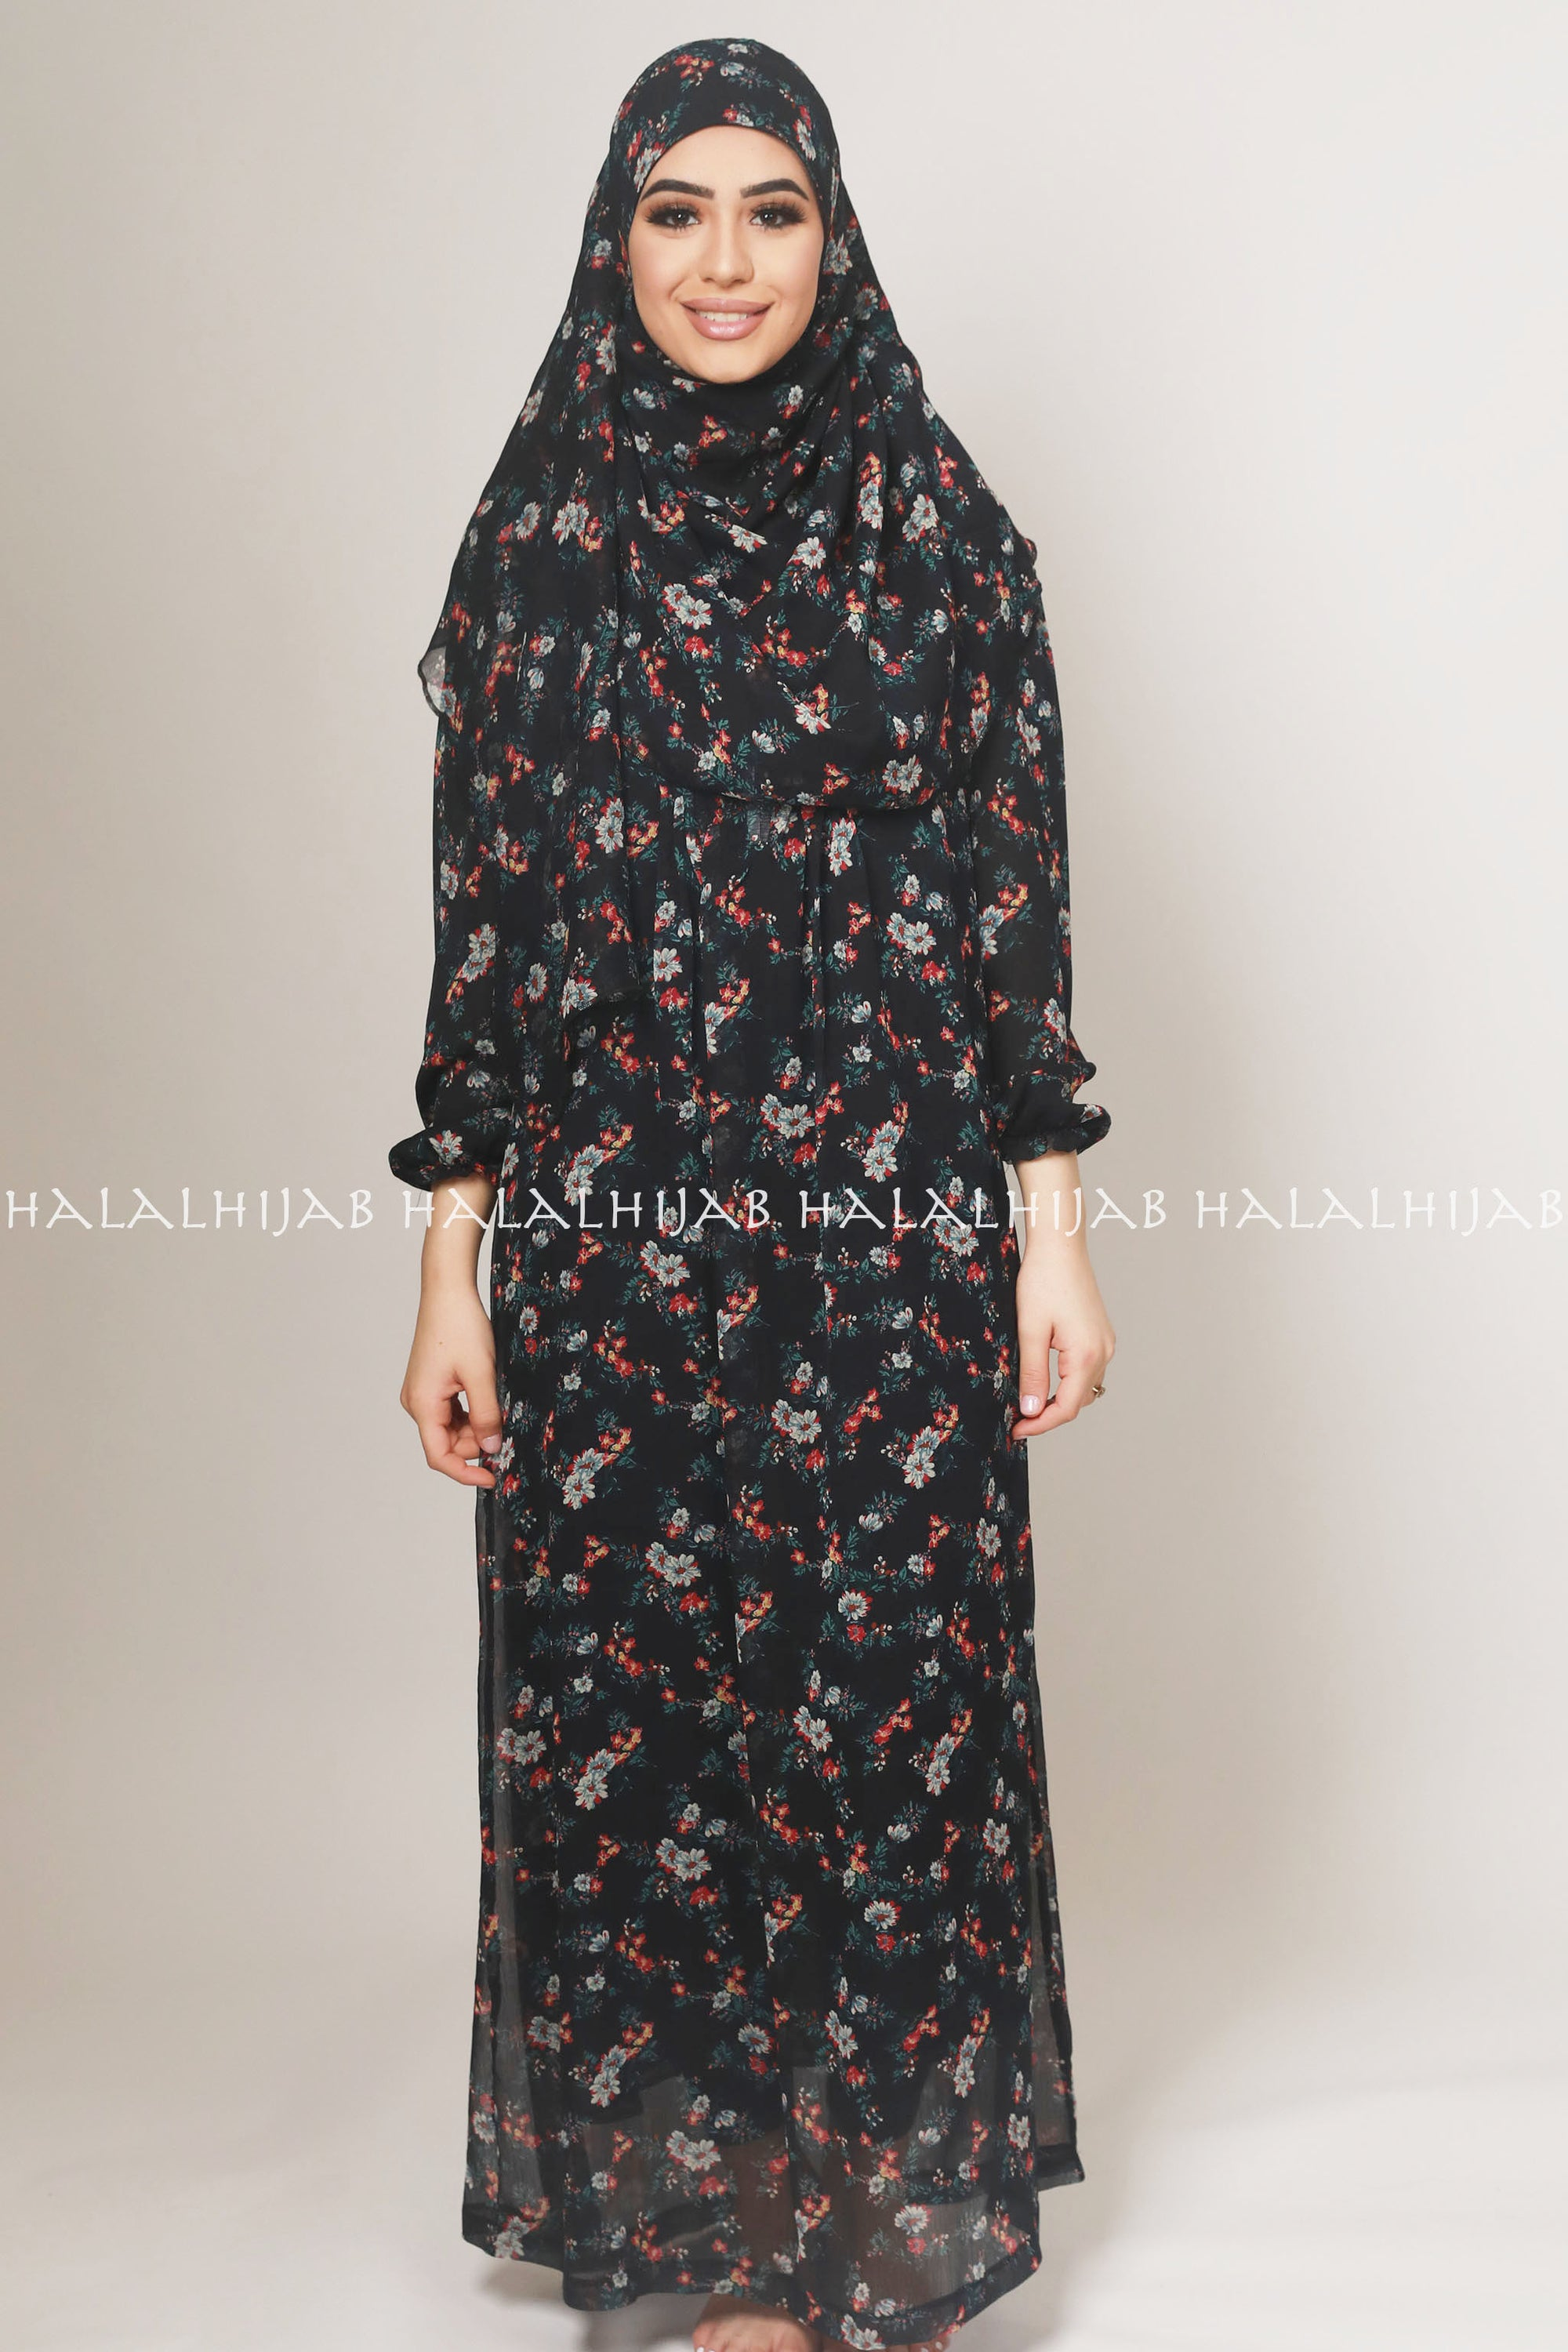 Black Red Floral Modest Dress with Matching Hijab